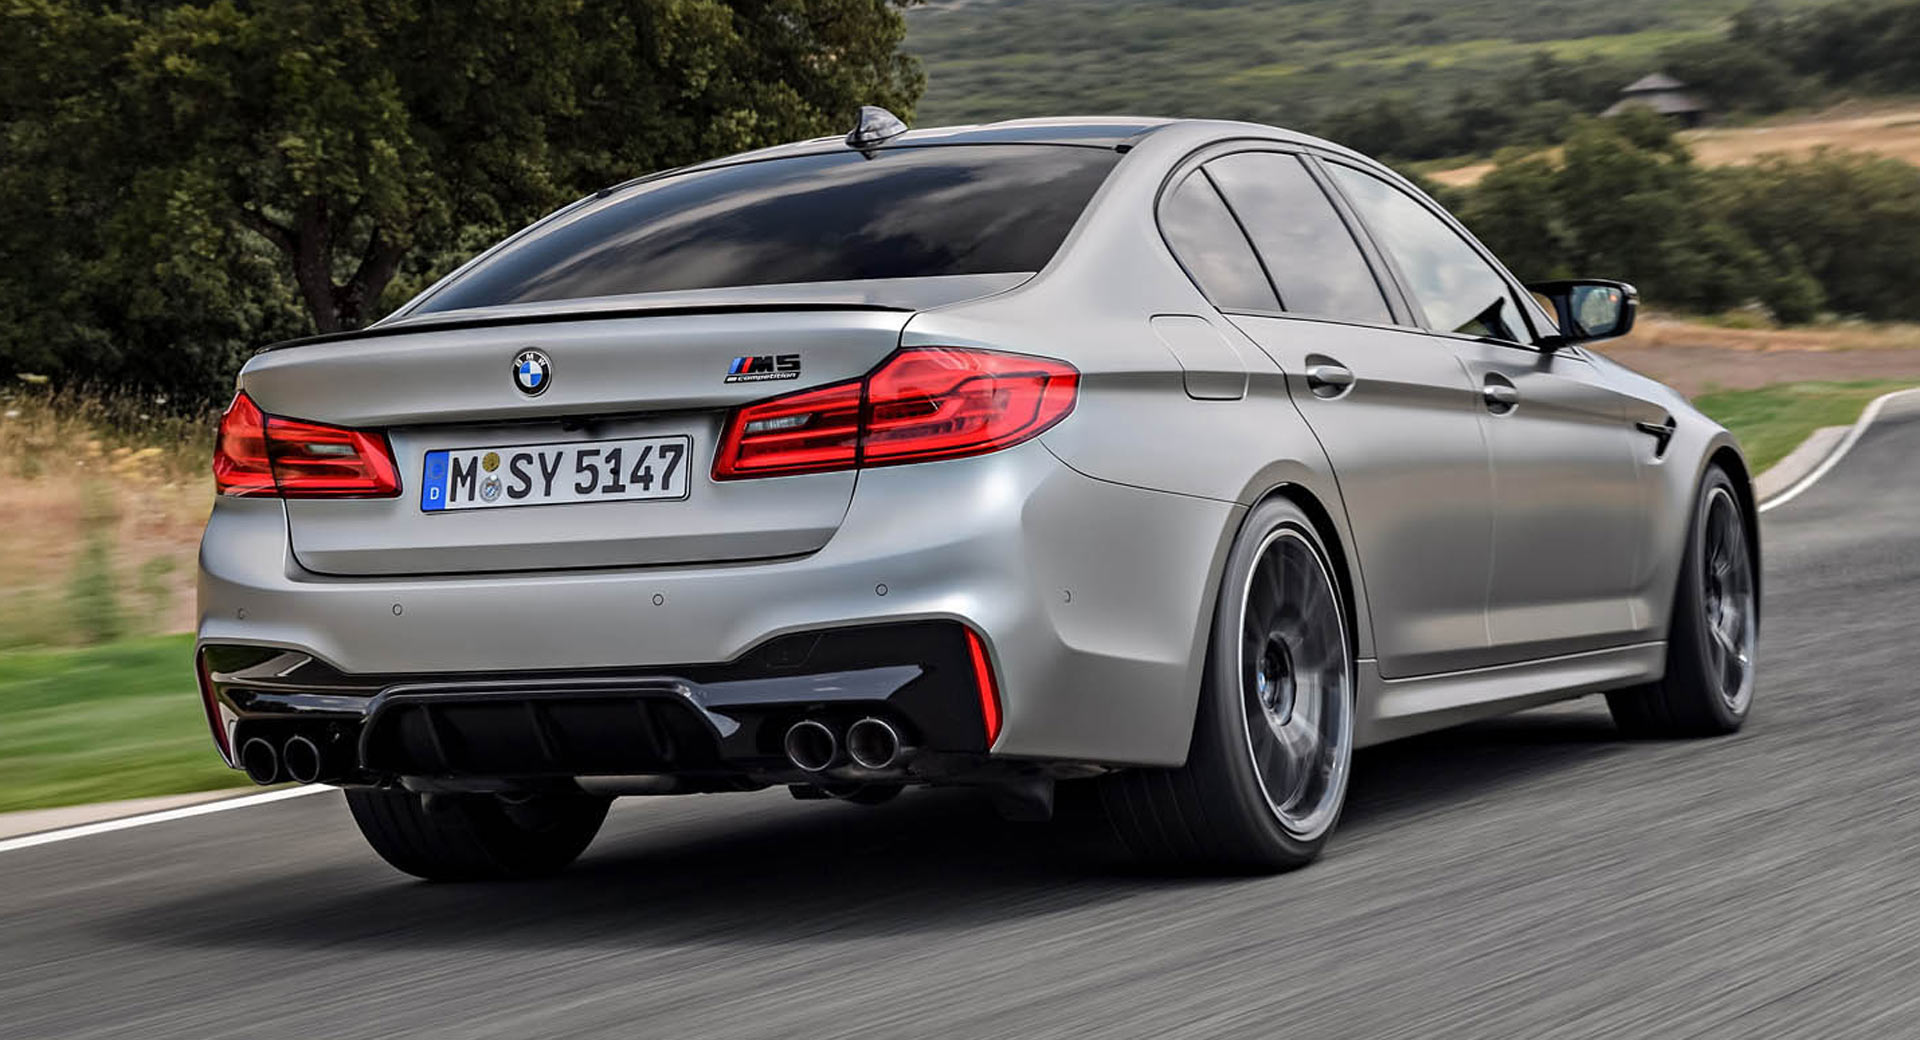 The Bmw M5 Competition Actually Has Almost 700 Hp Carscoops